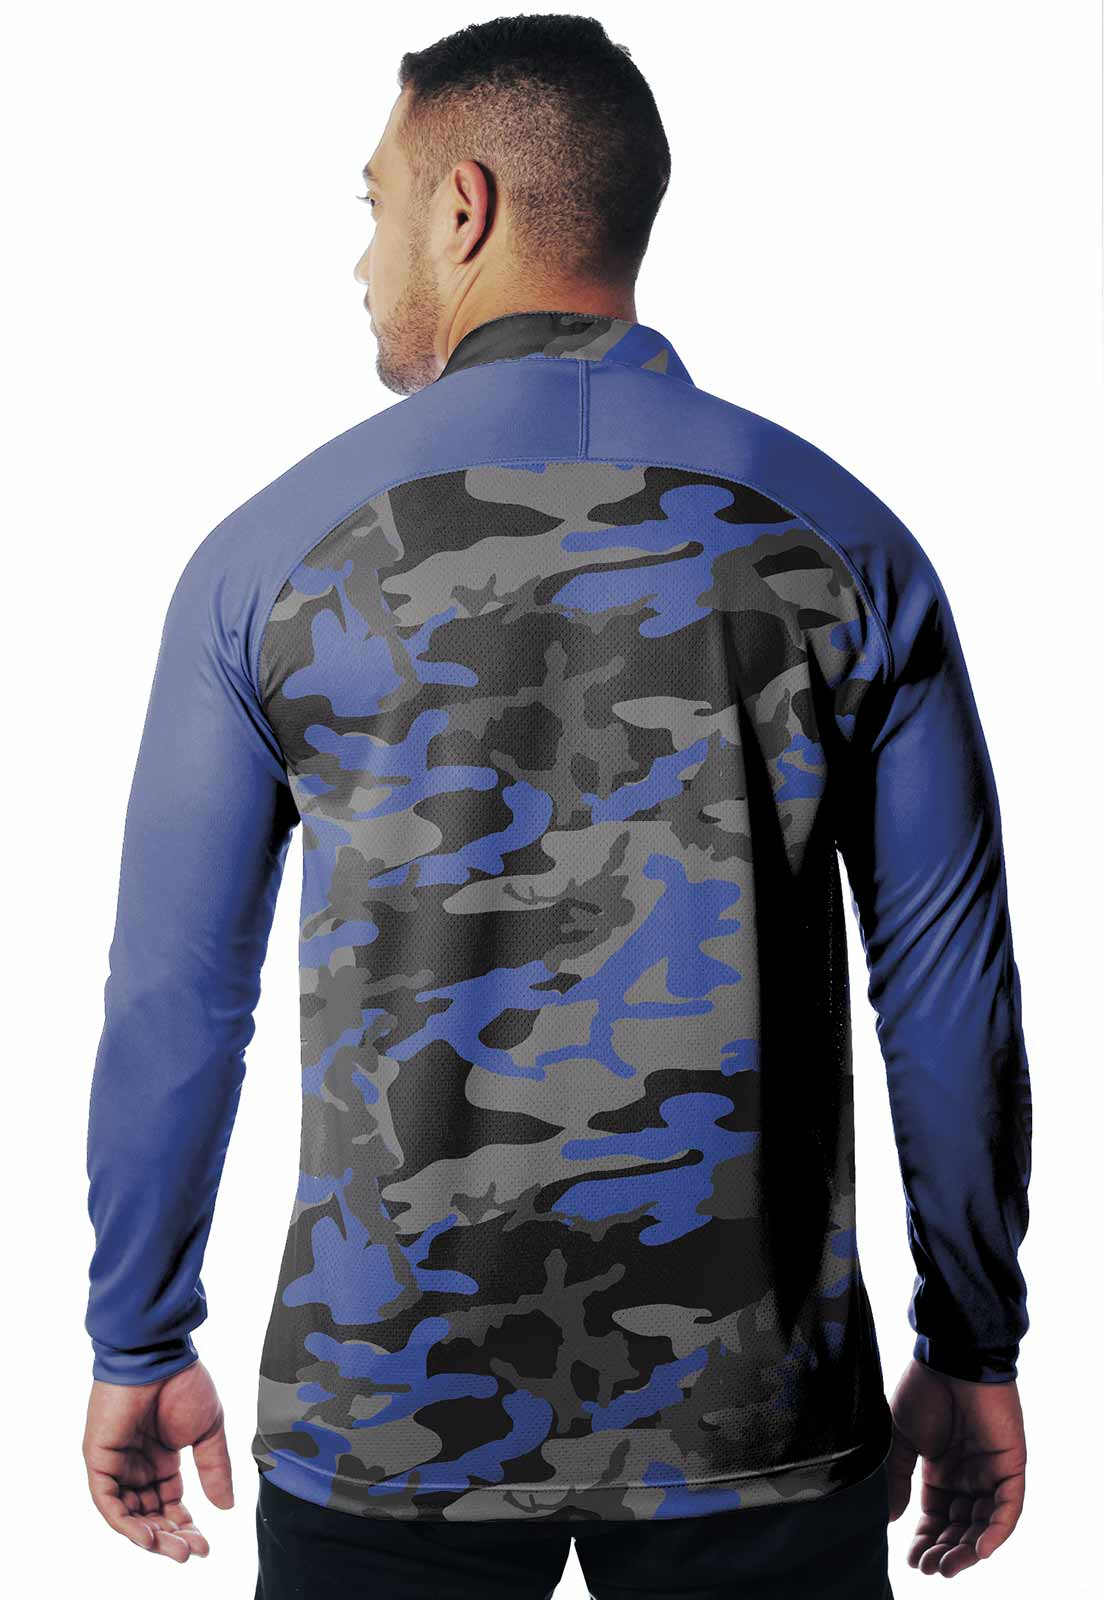 CAMISA DE PESCA FISH PRO 18 MASCULINA + BANDANA GRÁTIS  - REAL HUNTER OUTDOORS